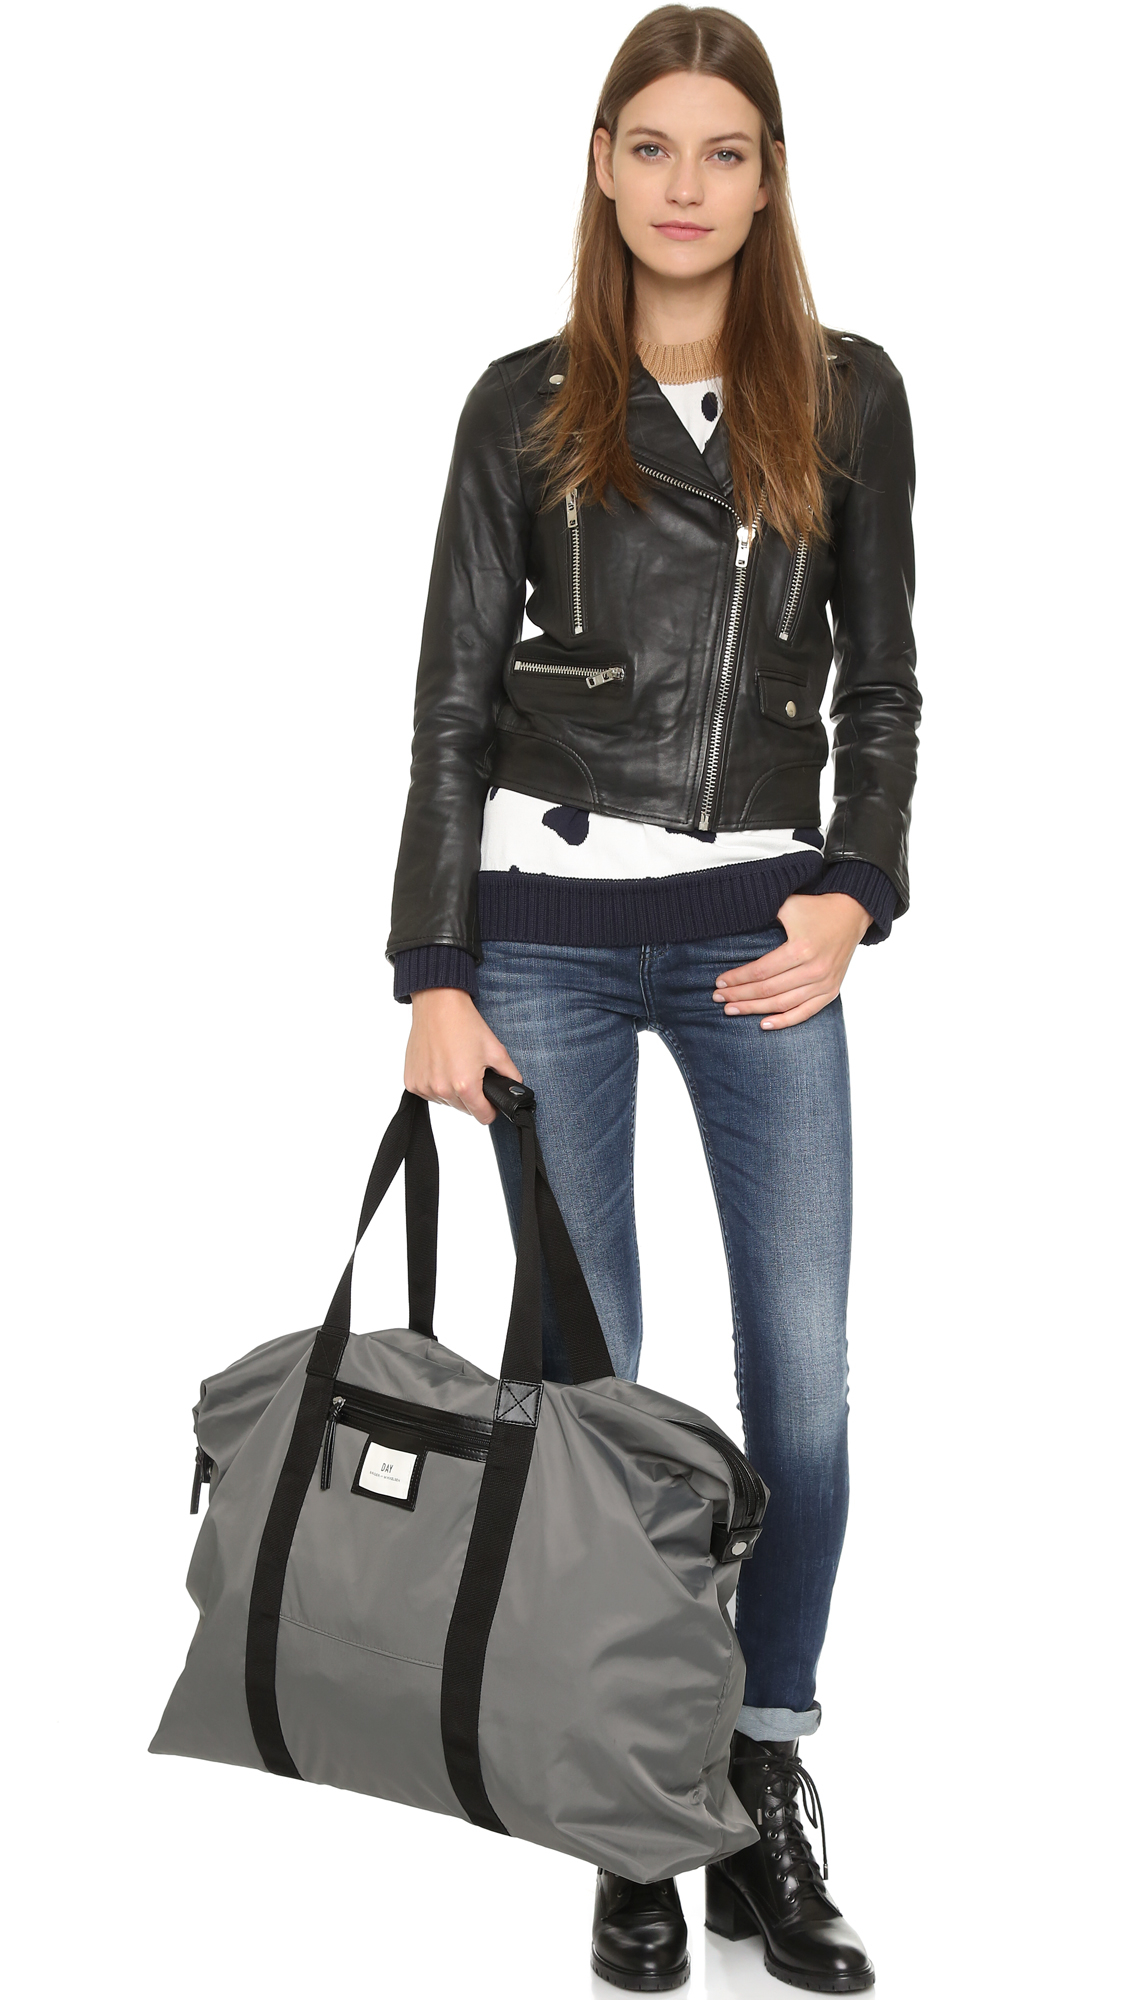 21cc1c34421b1 Lyst - Day Birger et Mikkelsen Day Gweneth Weekend Bag - Kohl in Gray